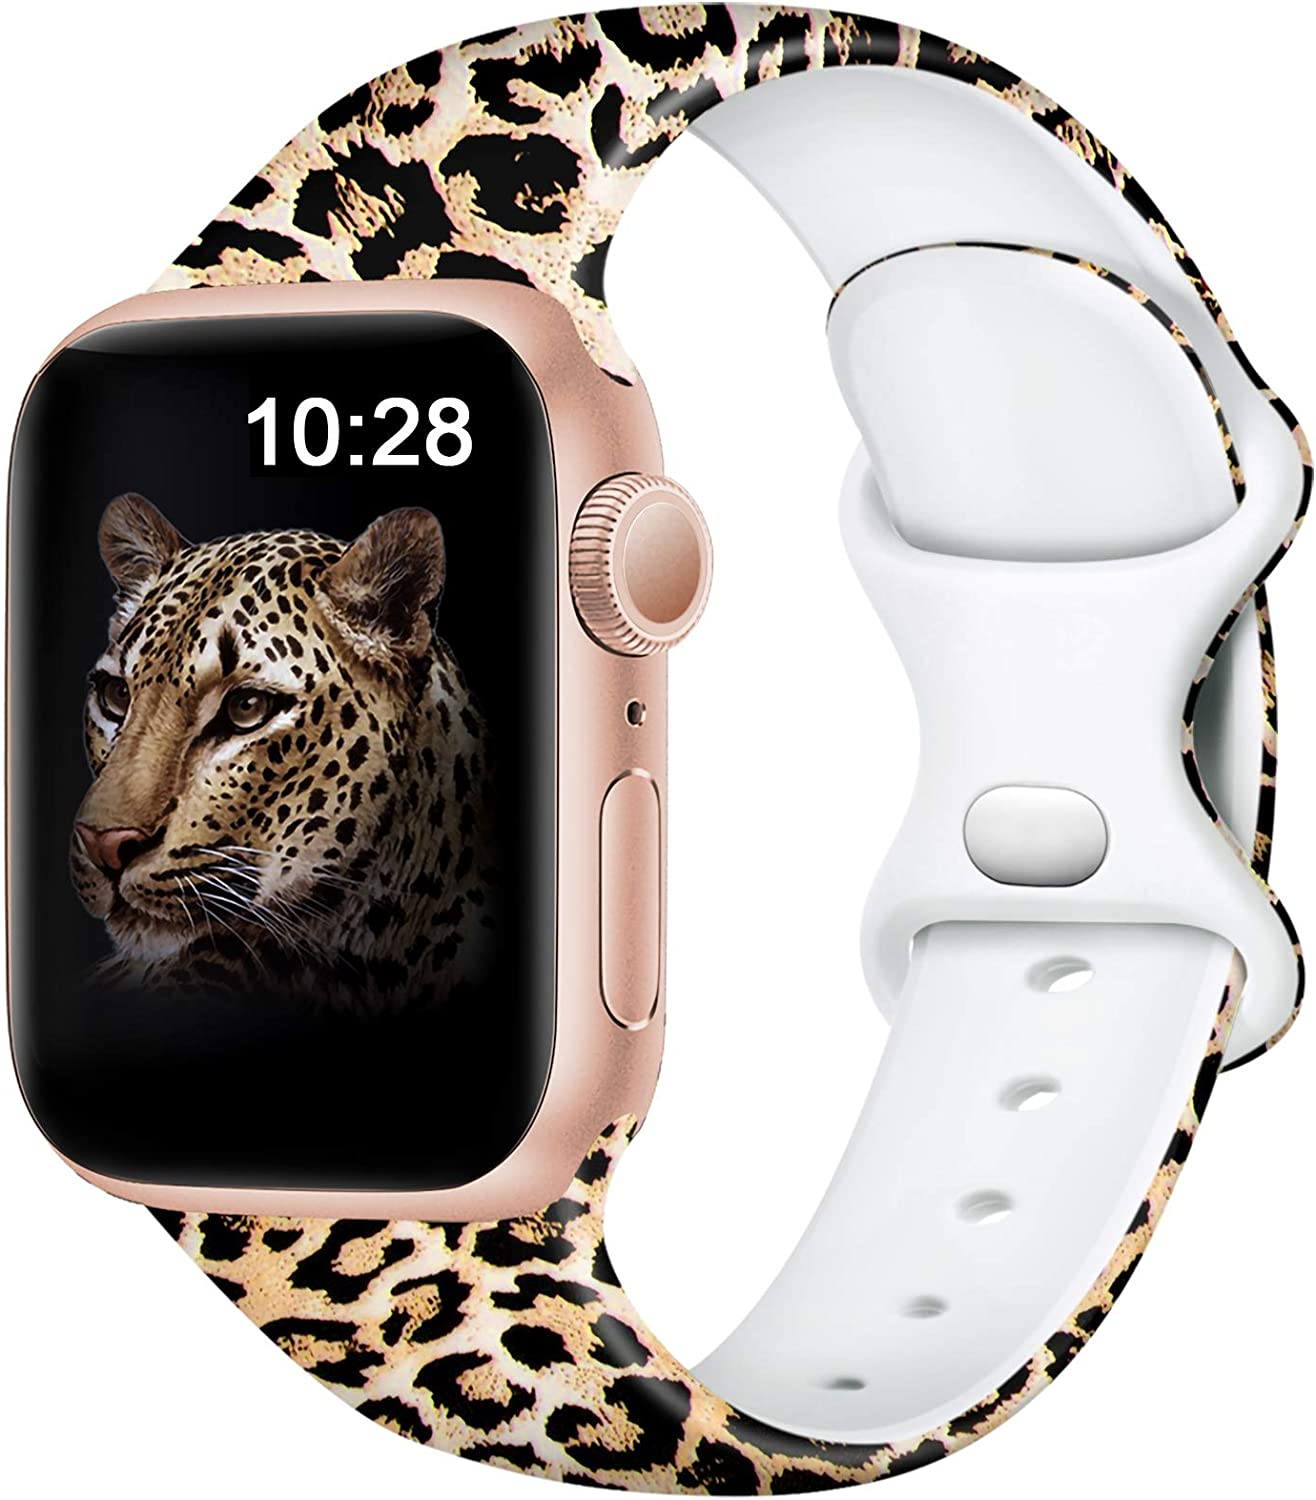 Easuny Floral Band Compatible for Apple Watch 40mm 38mm Womens Girls - Cute Fadeless Floral Soft Pattern Printed Silicone Replacement Wristband for iWatch SE & Series 6/5/4/3/2/1 Men